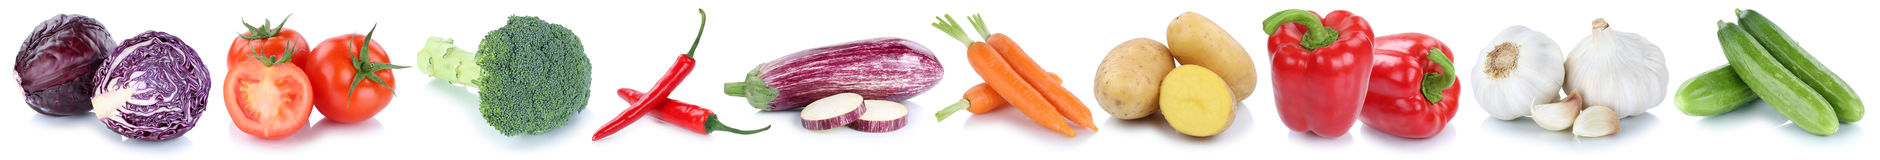 Vegetables carrots tomatoes fresh cucumber potatoes isolated in. Vegetables carrots tomatoes fresh cucumber potatoes isolated on a white background in a row Royalty Free Stock Images